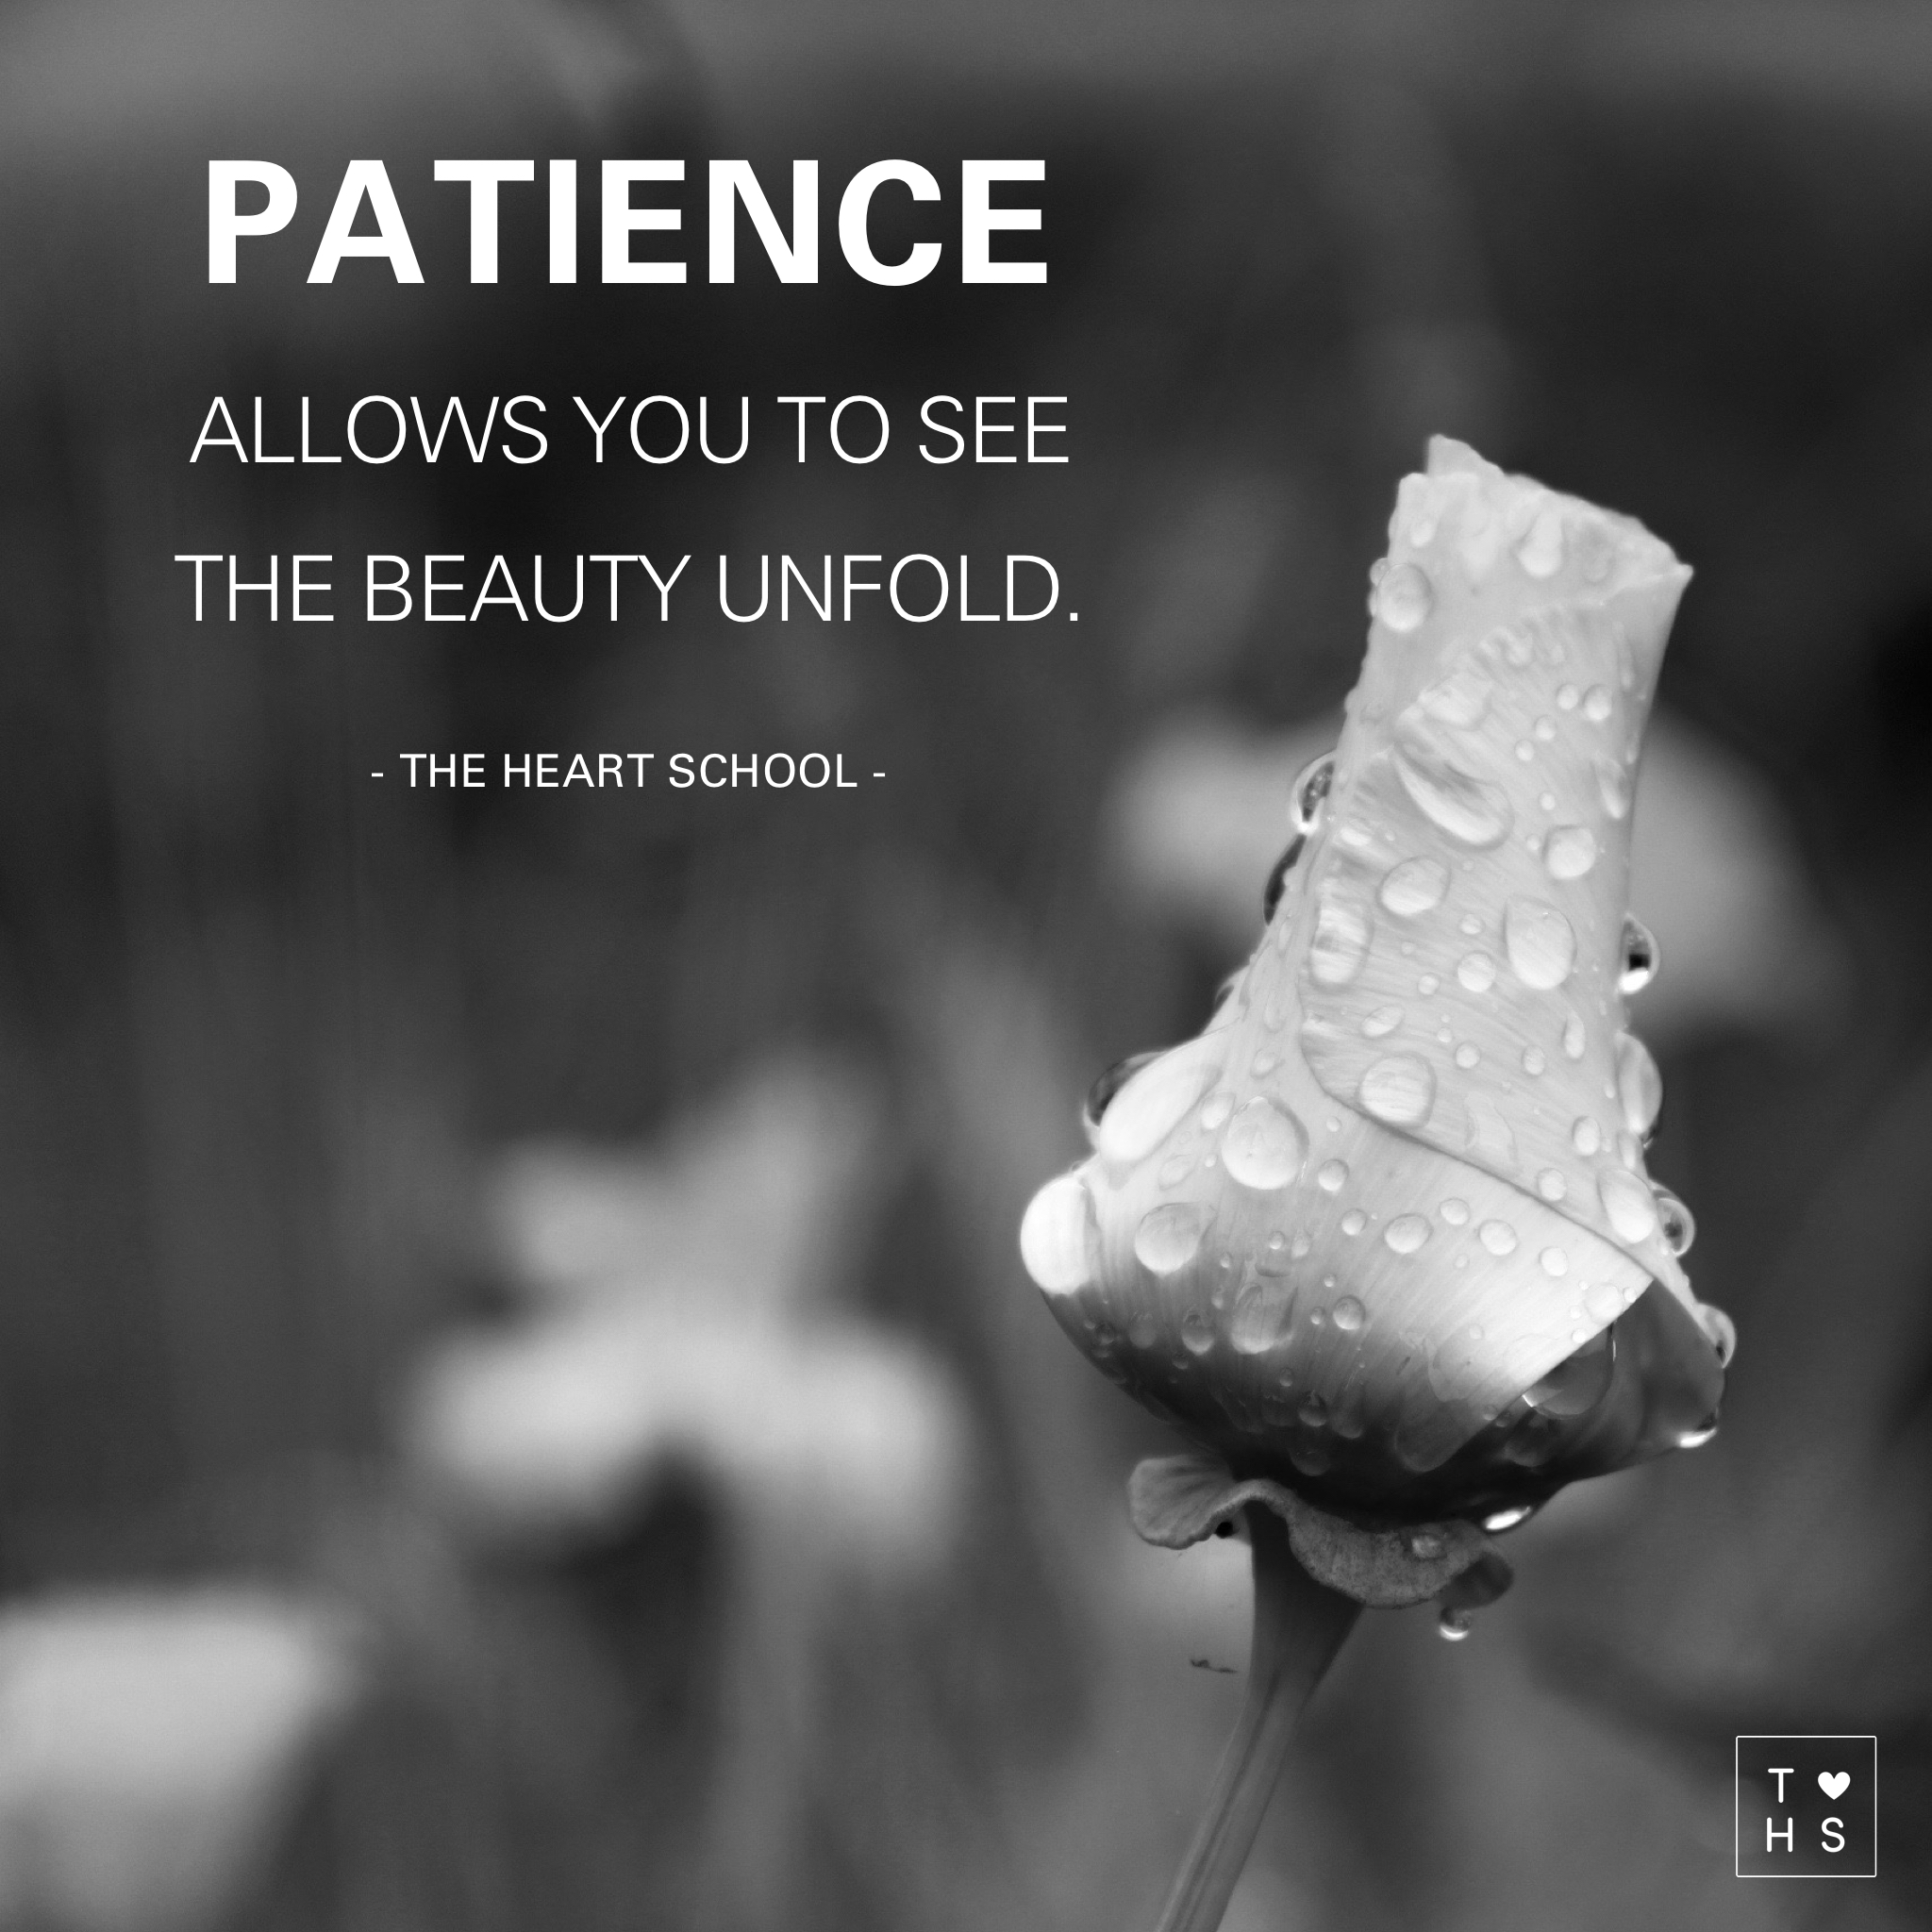 Patience, a virtue that is much harder to come by. Our fast paced society has people wearing busyness as a badge of honour. Instead, focus more on time to be, to dream, to work things out and center the source of your patience on your believes, without expectations of gratification. Have faith and patience will come as a natural response. And with patience comes beauty and kindness.